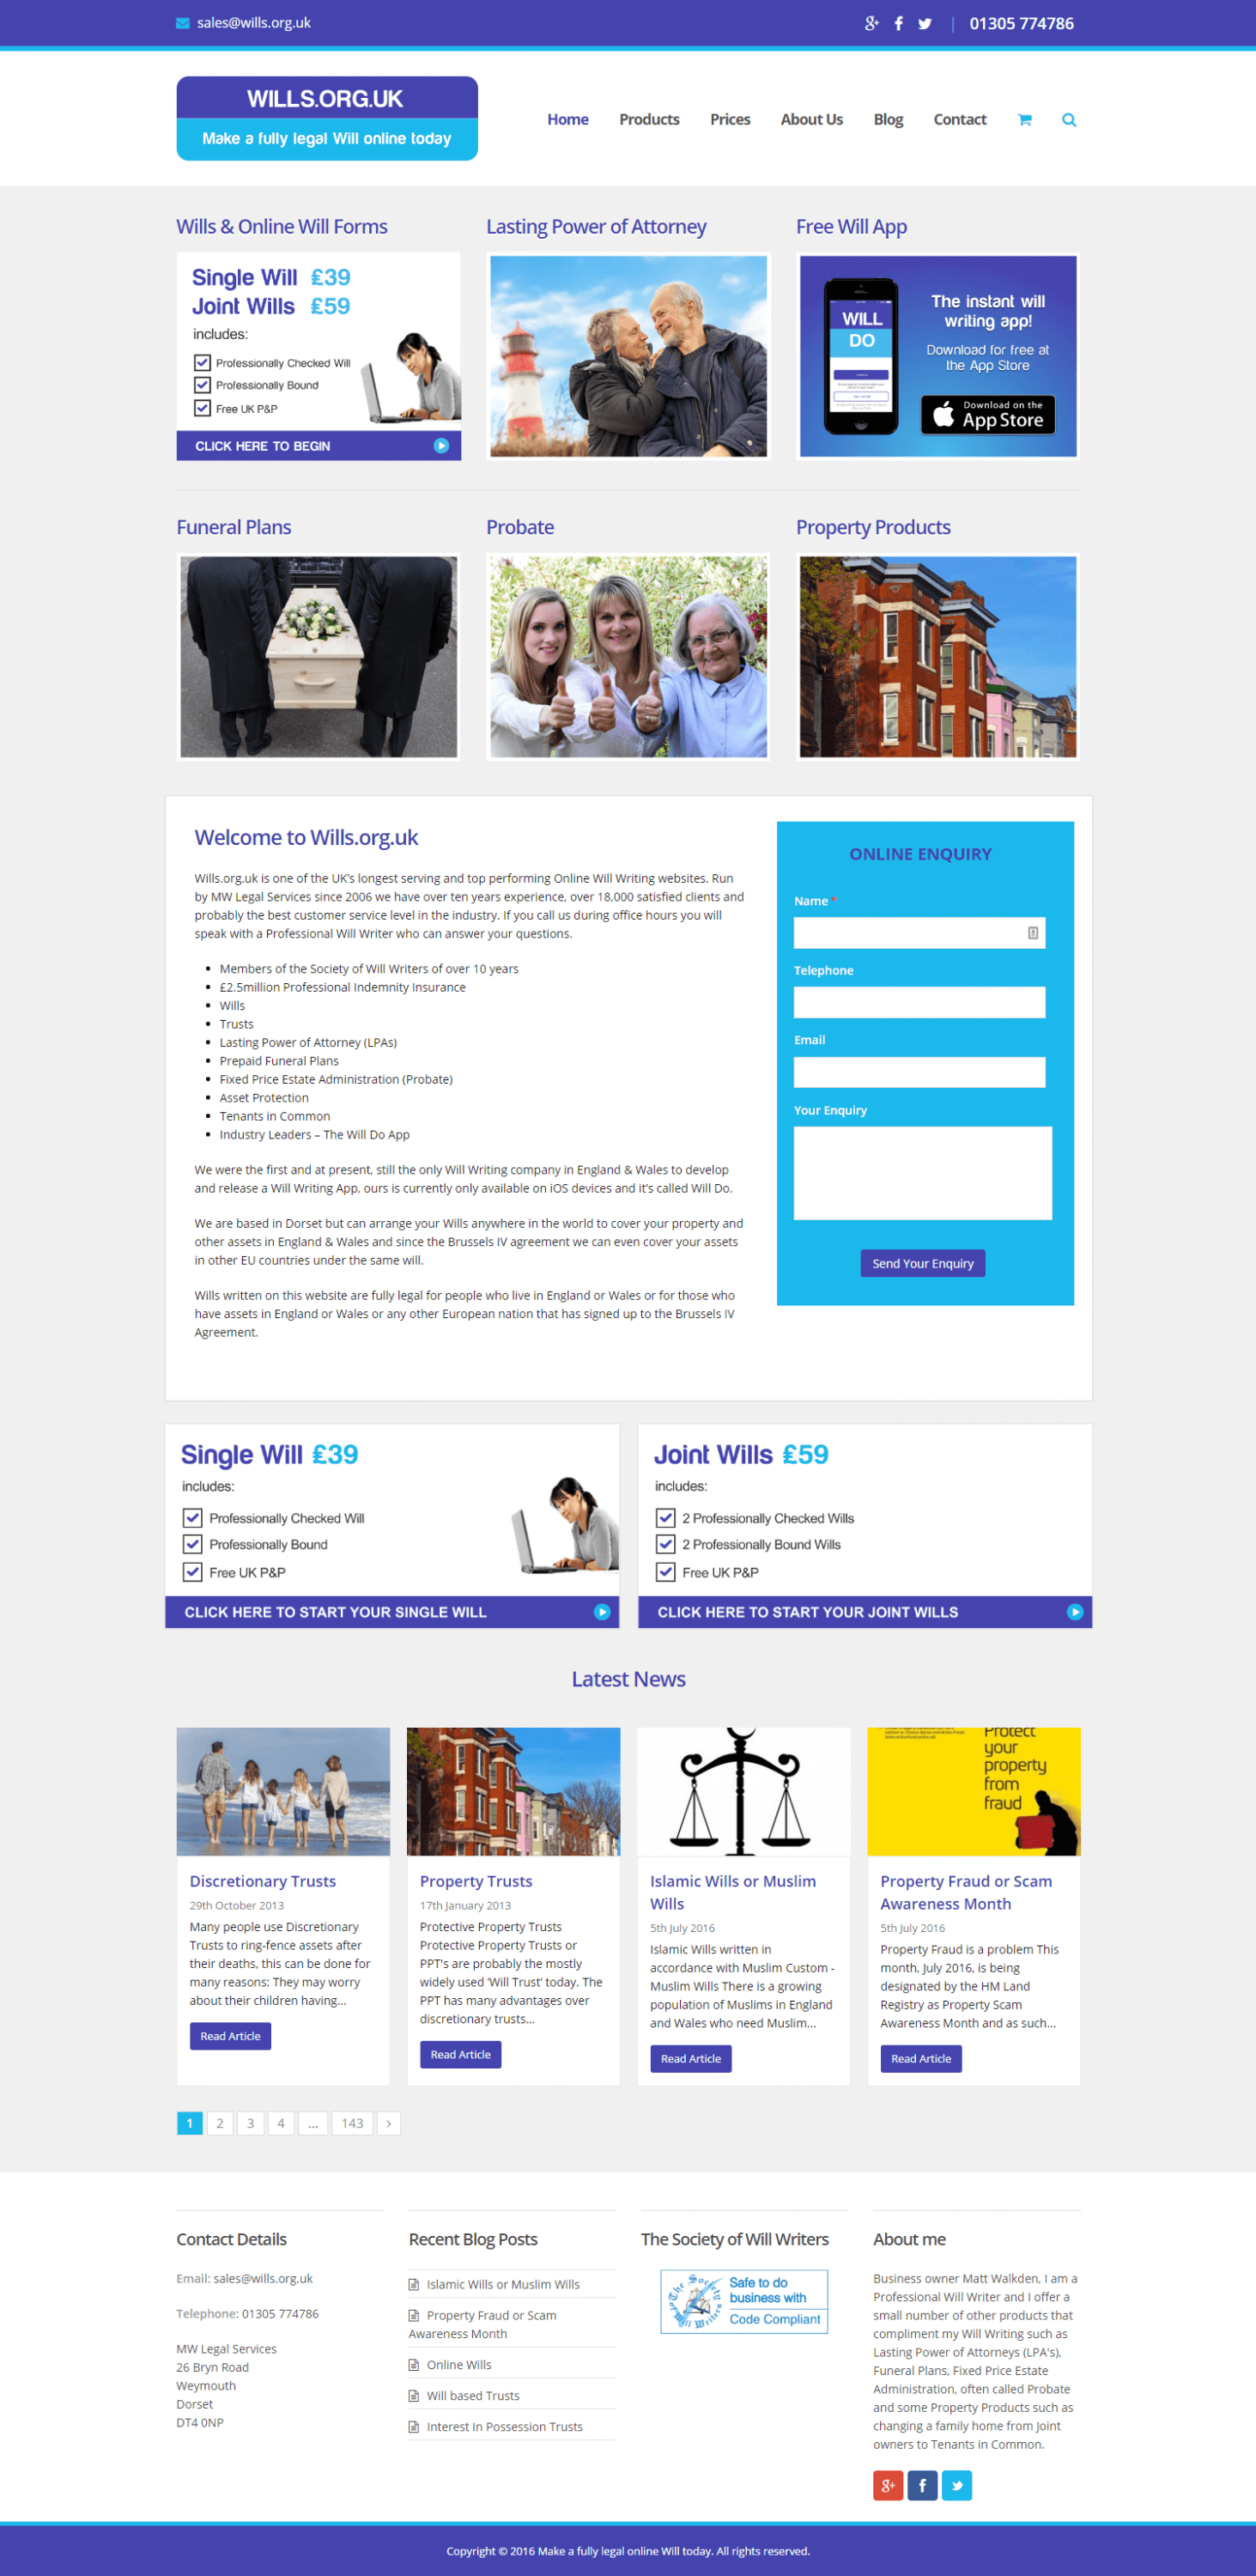 MW Legal Services